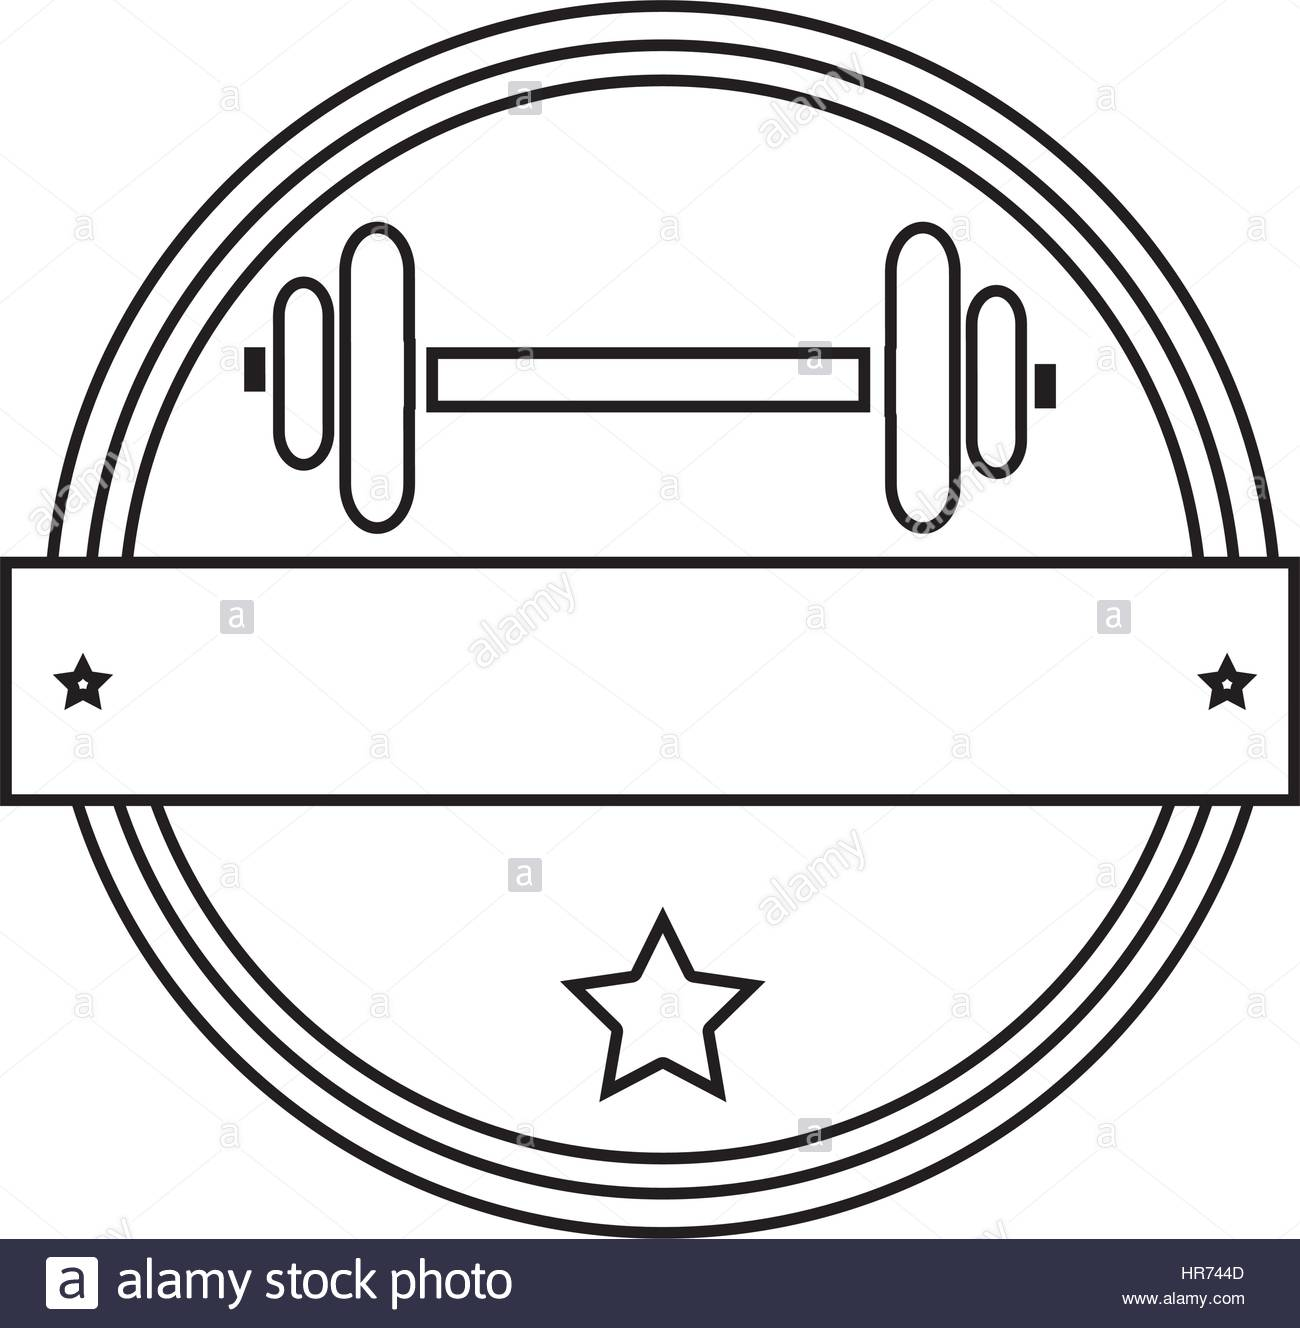 1300x1328 Silhouette Circular Border With Dumbbell For Training In Gym